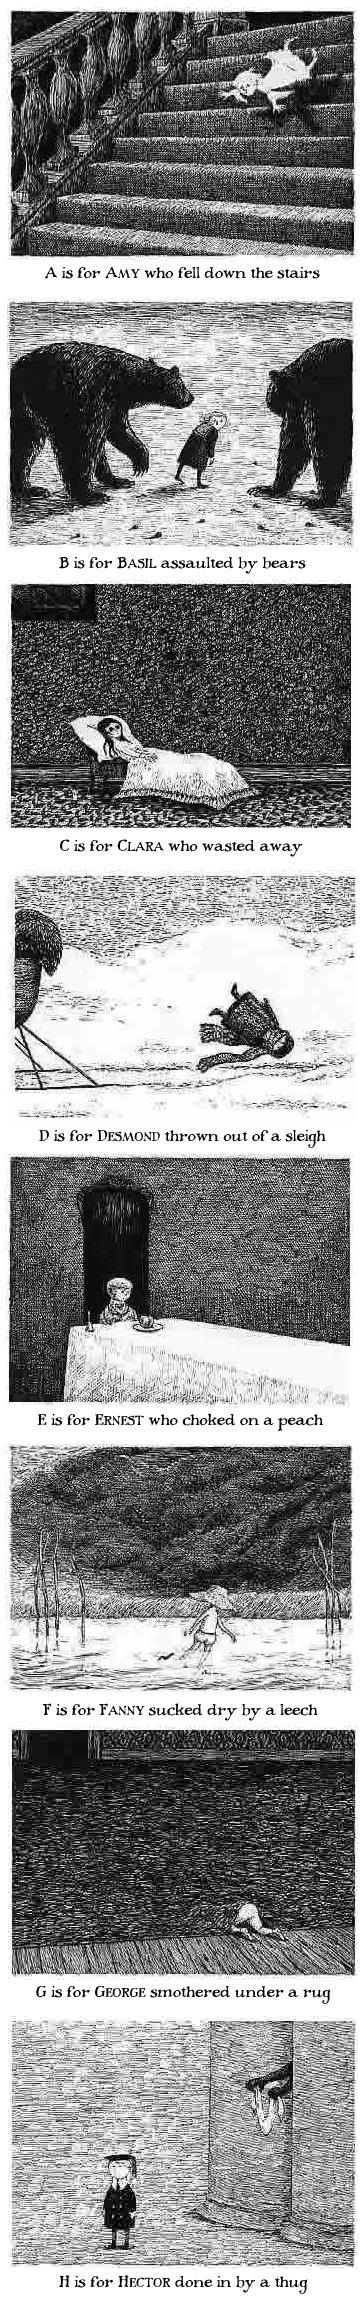 Edward Gorey The Gashlycrumb Tinies. This has echoes of The Rakes Song by The Decemberists.: